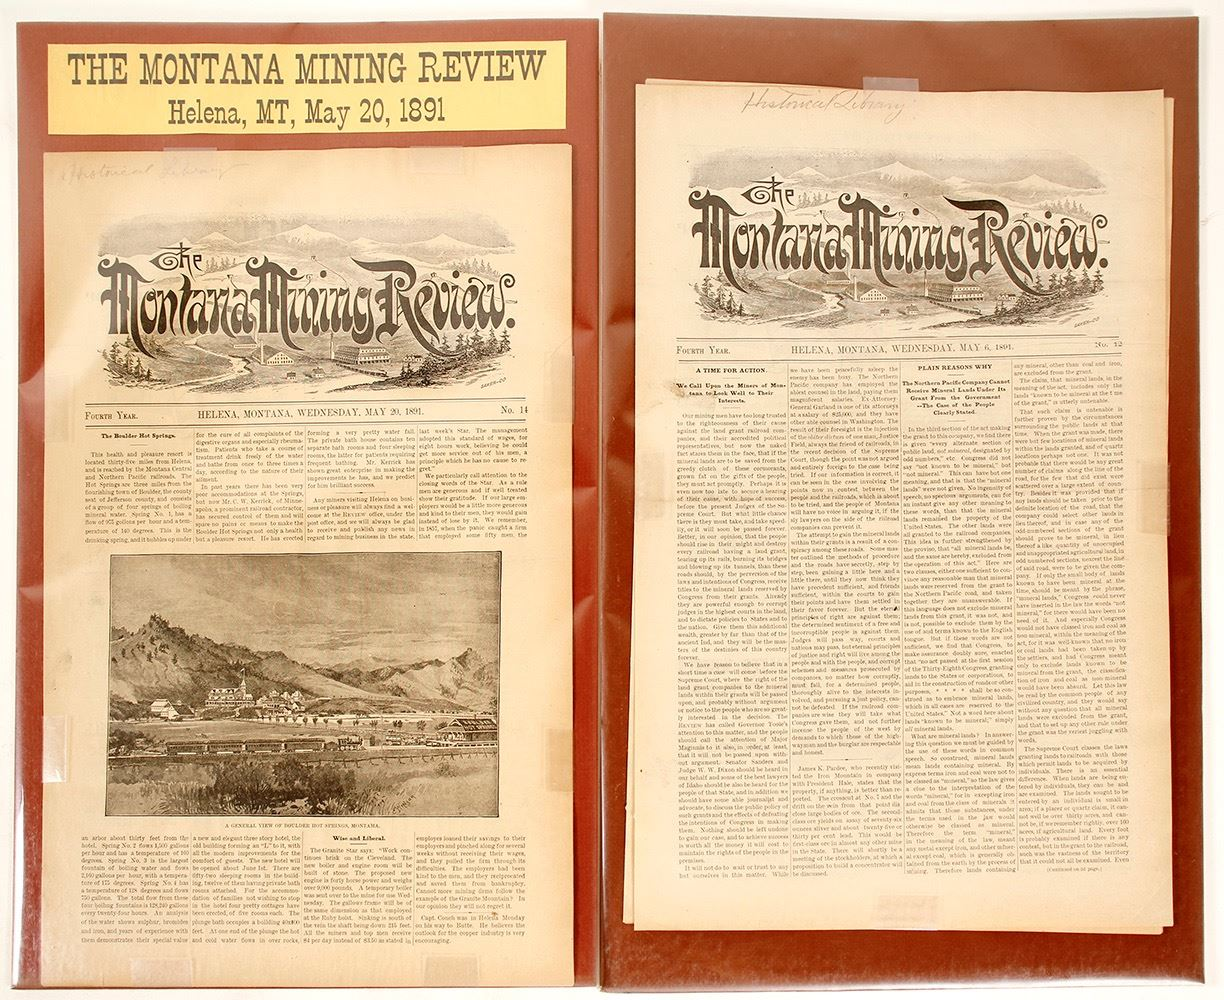 The Montana Mining Review